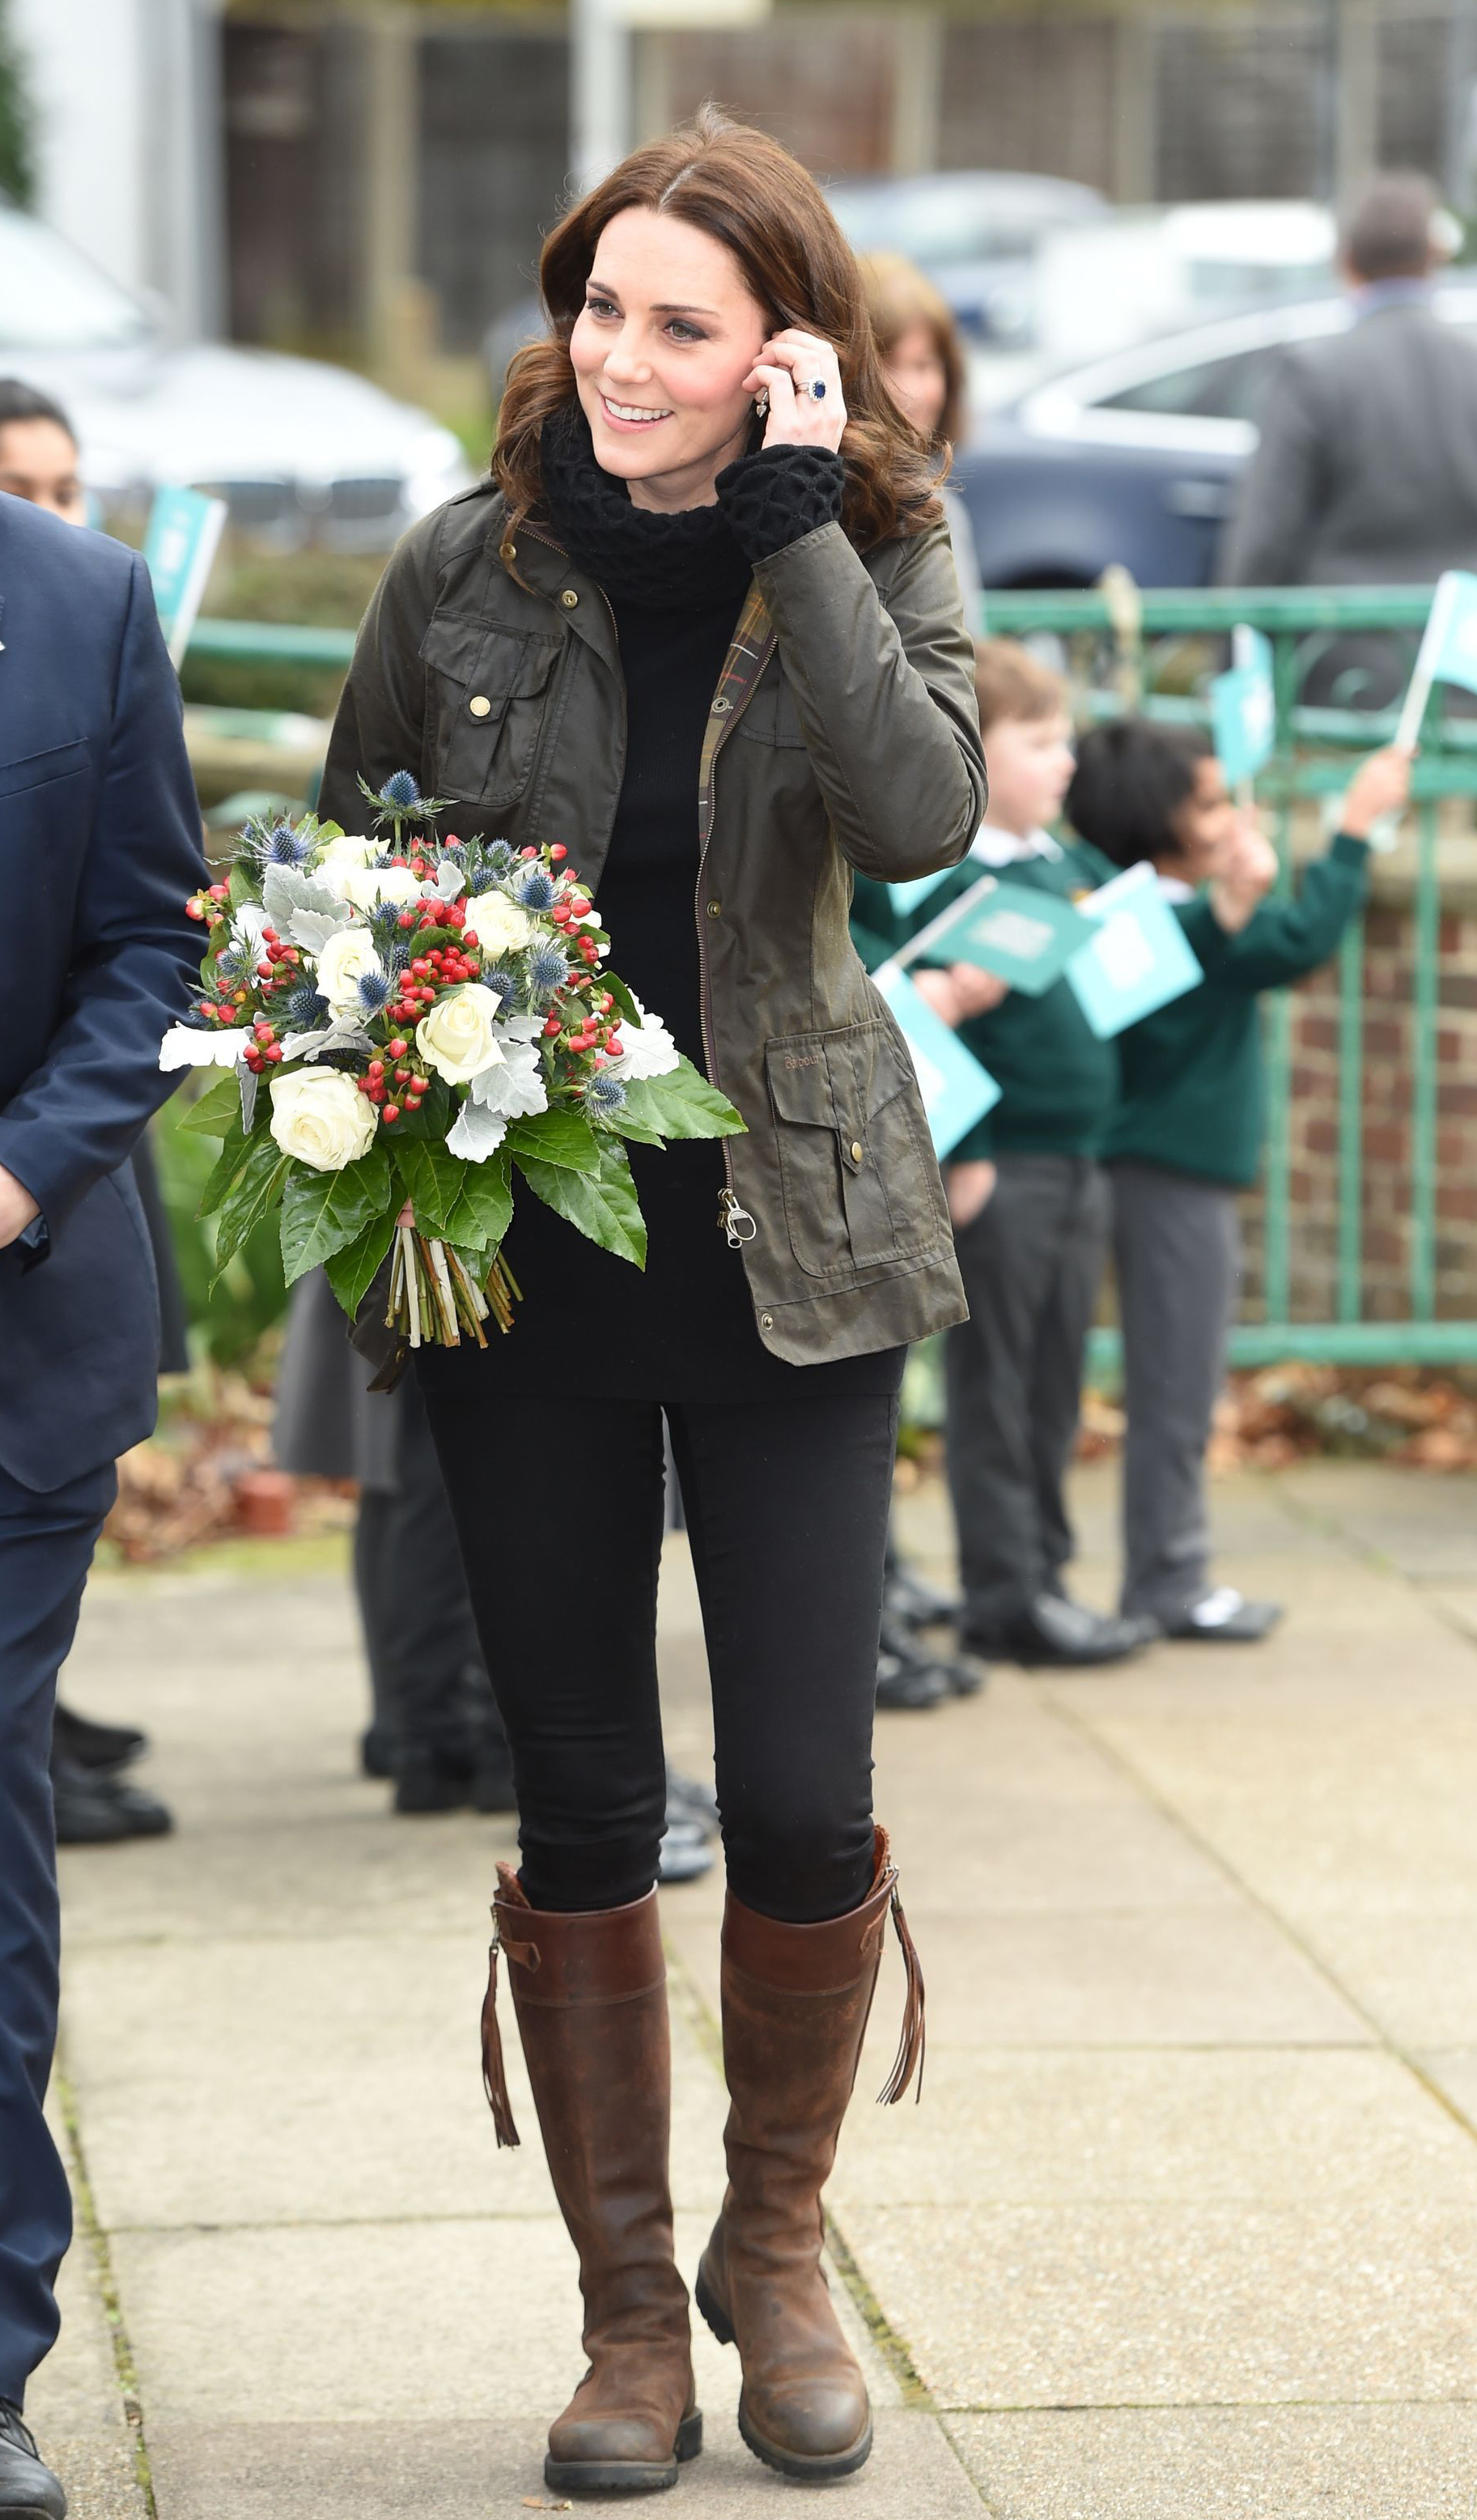 The Duchess of Cambridge arrives for a visit to the Robin Hood Primary School in London